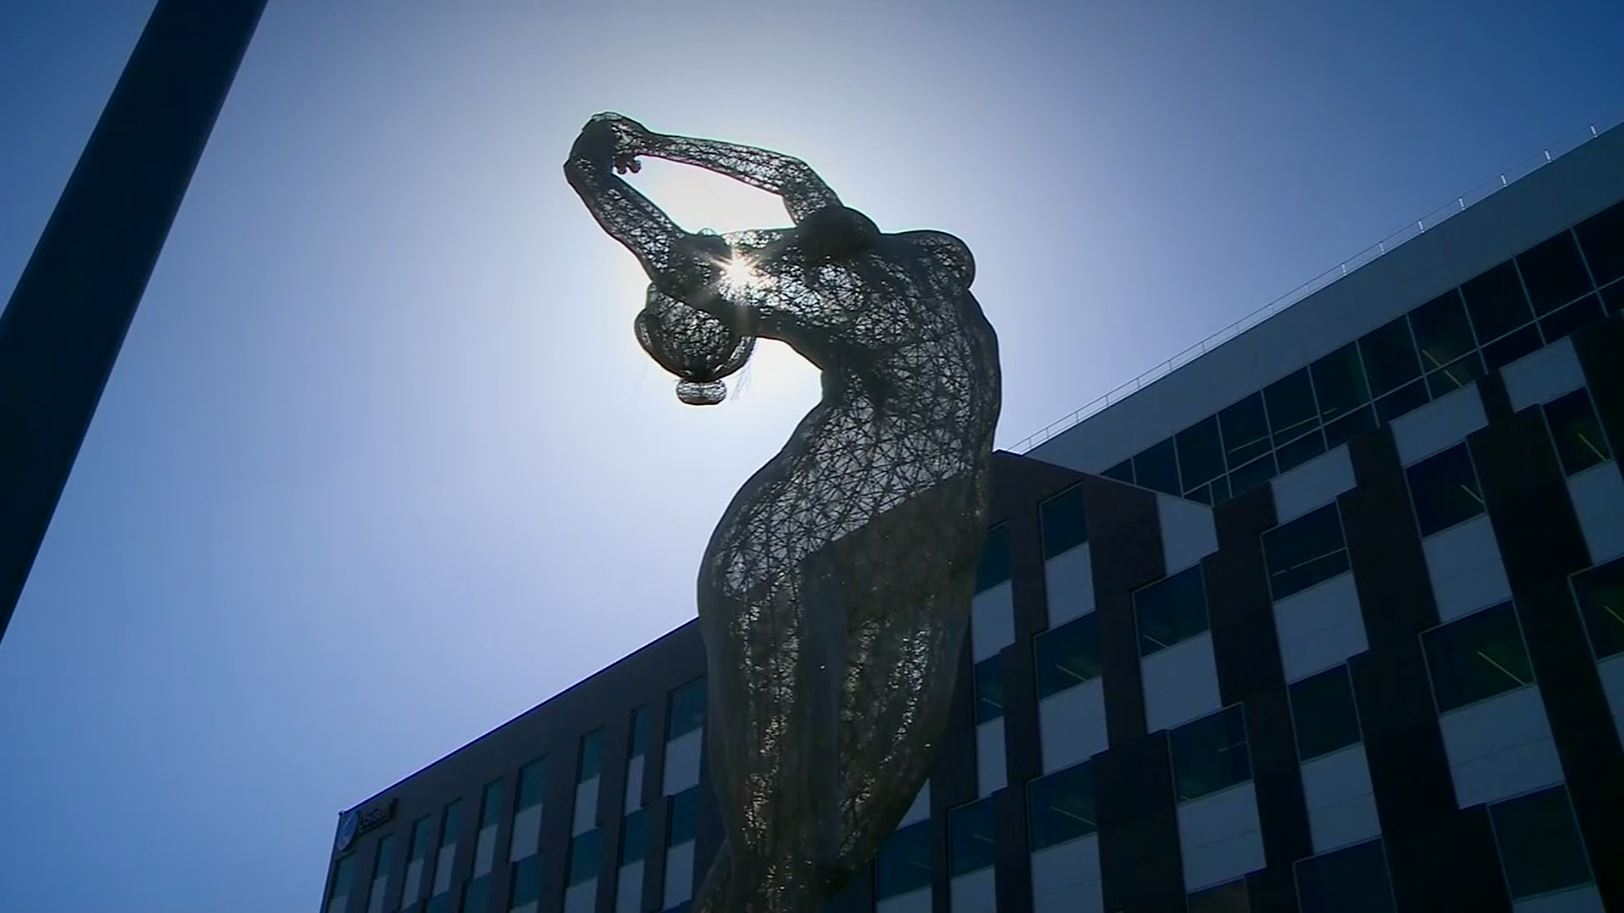 Controversy around 55-foot-tall nude woman sculpture in